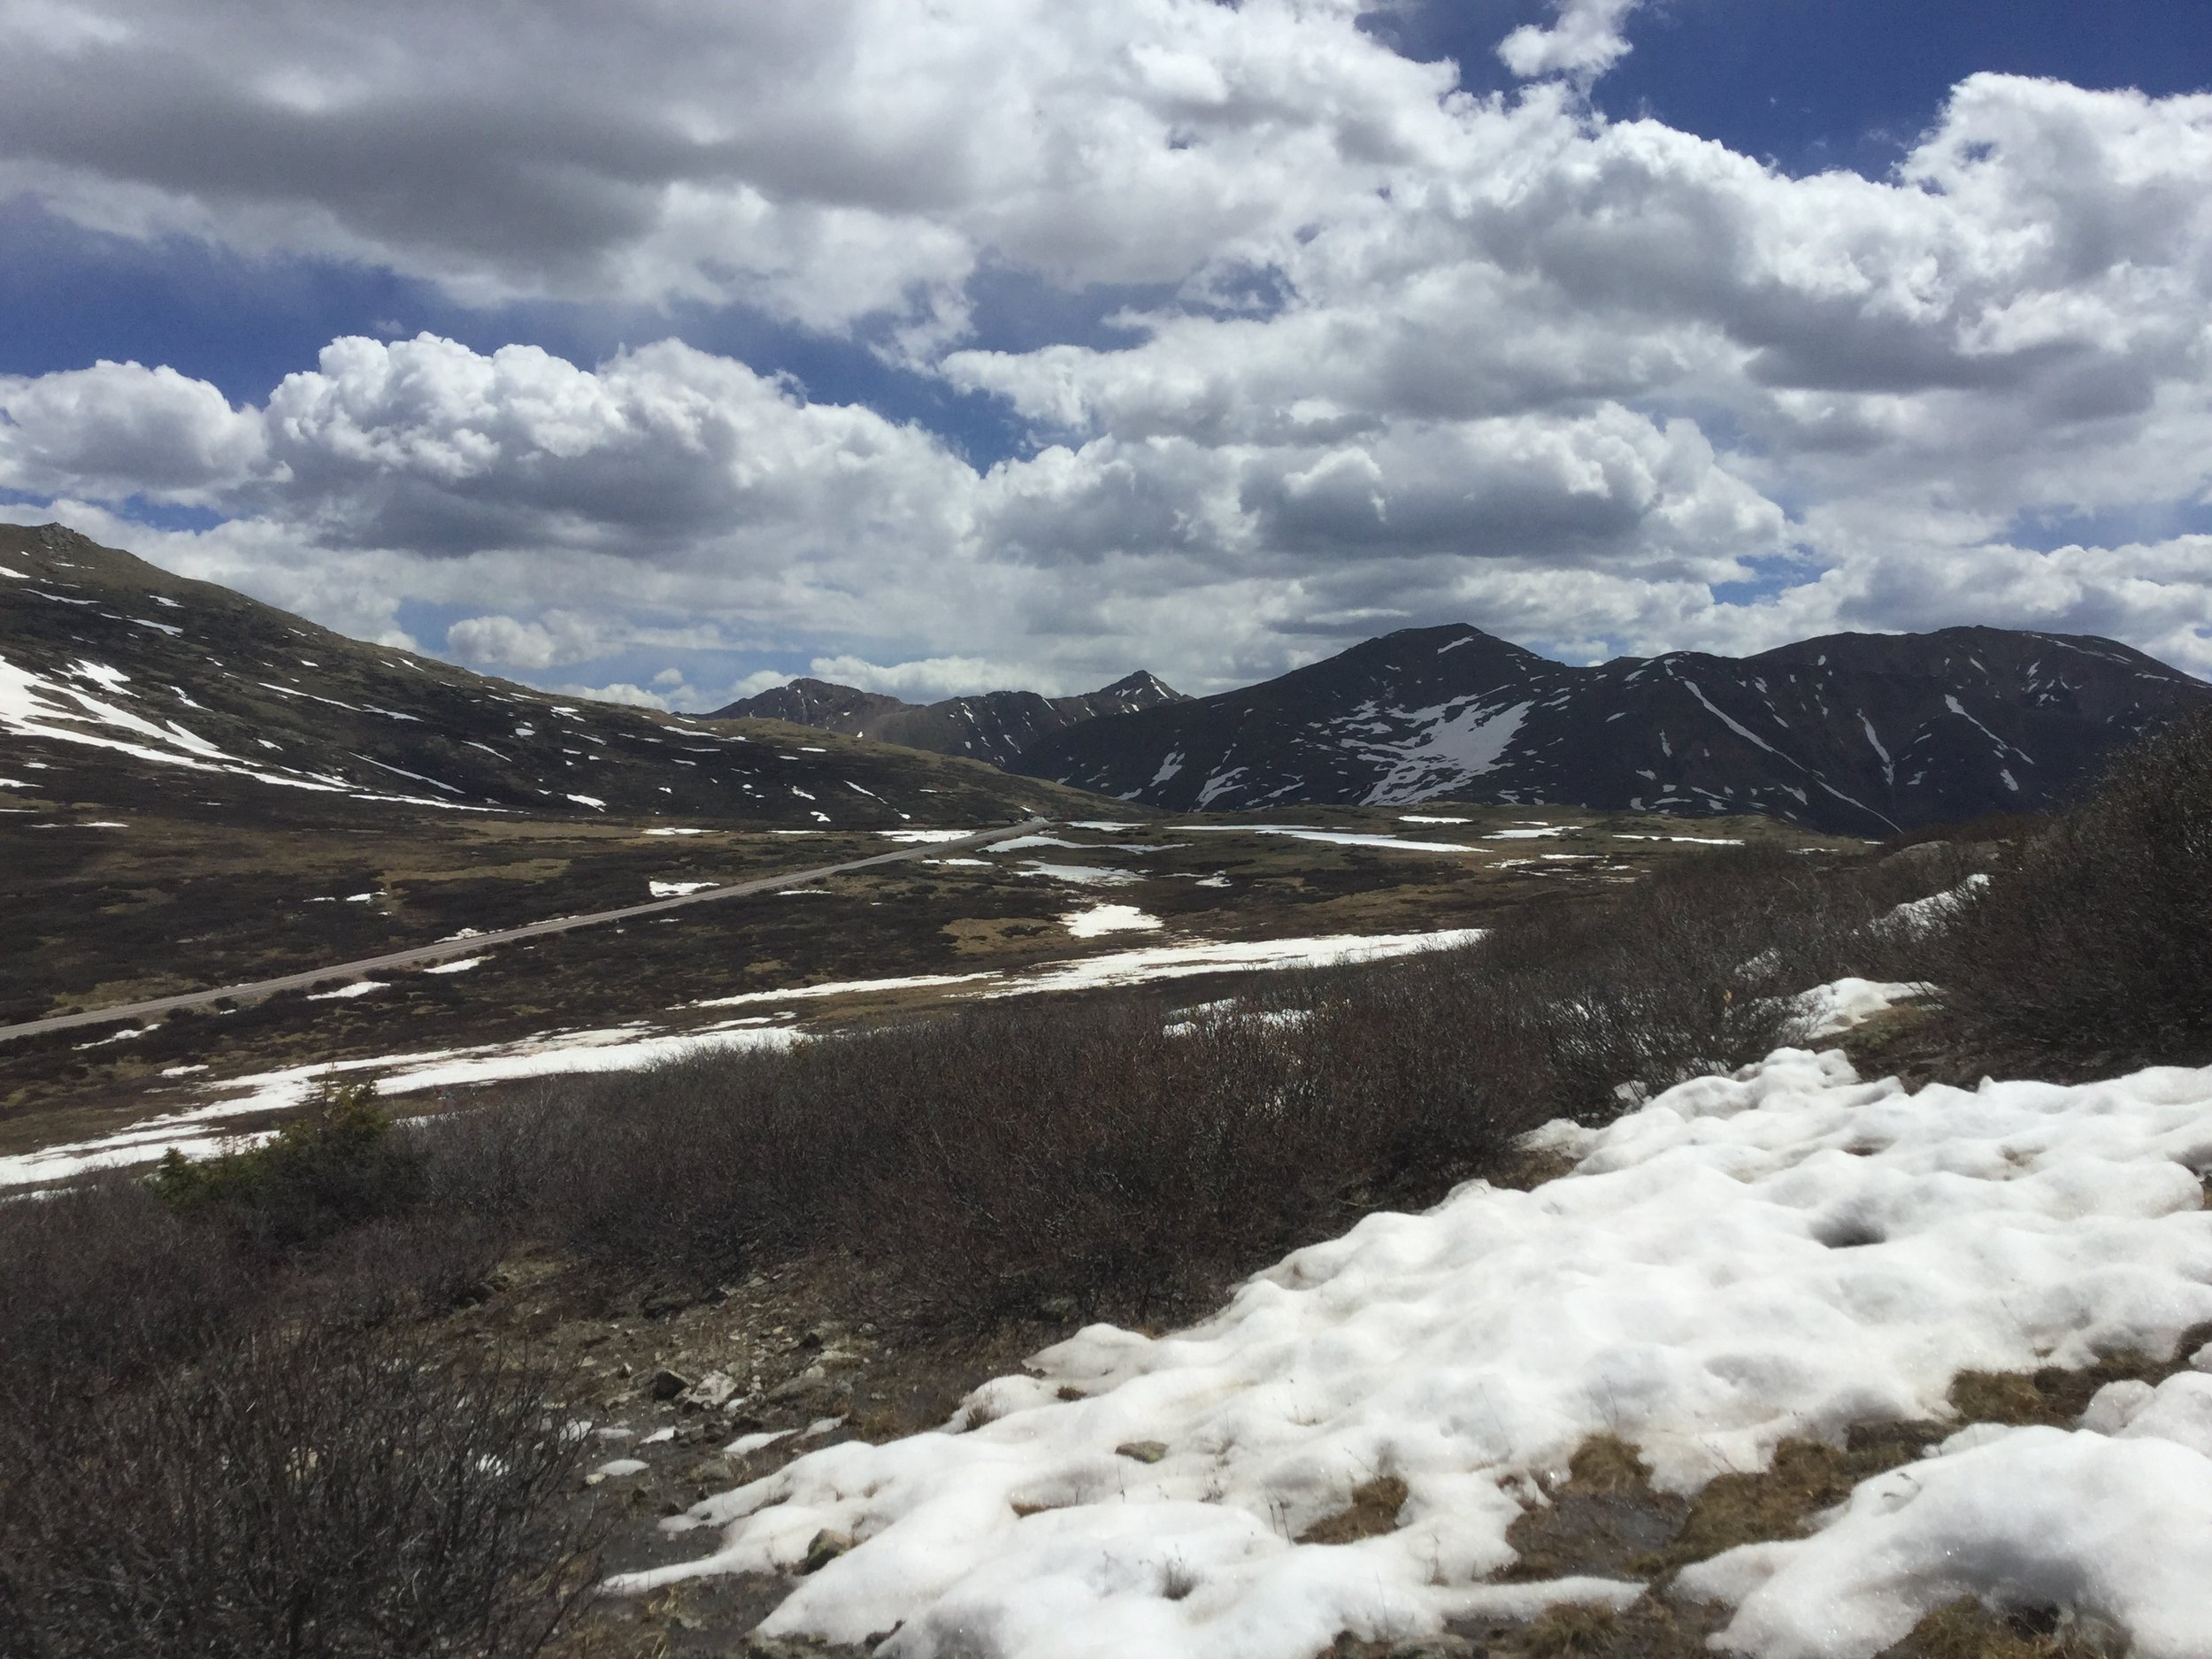 2018 snowpack early June